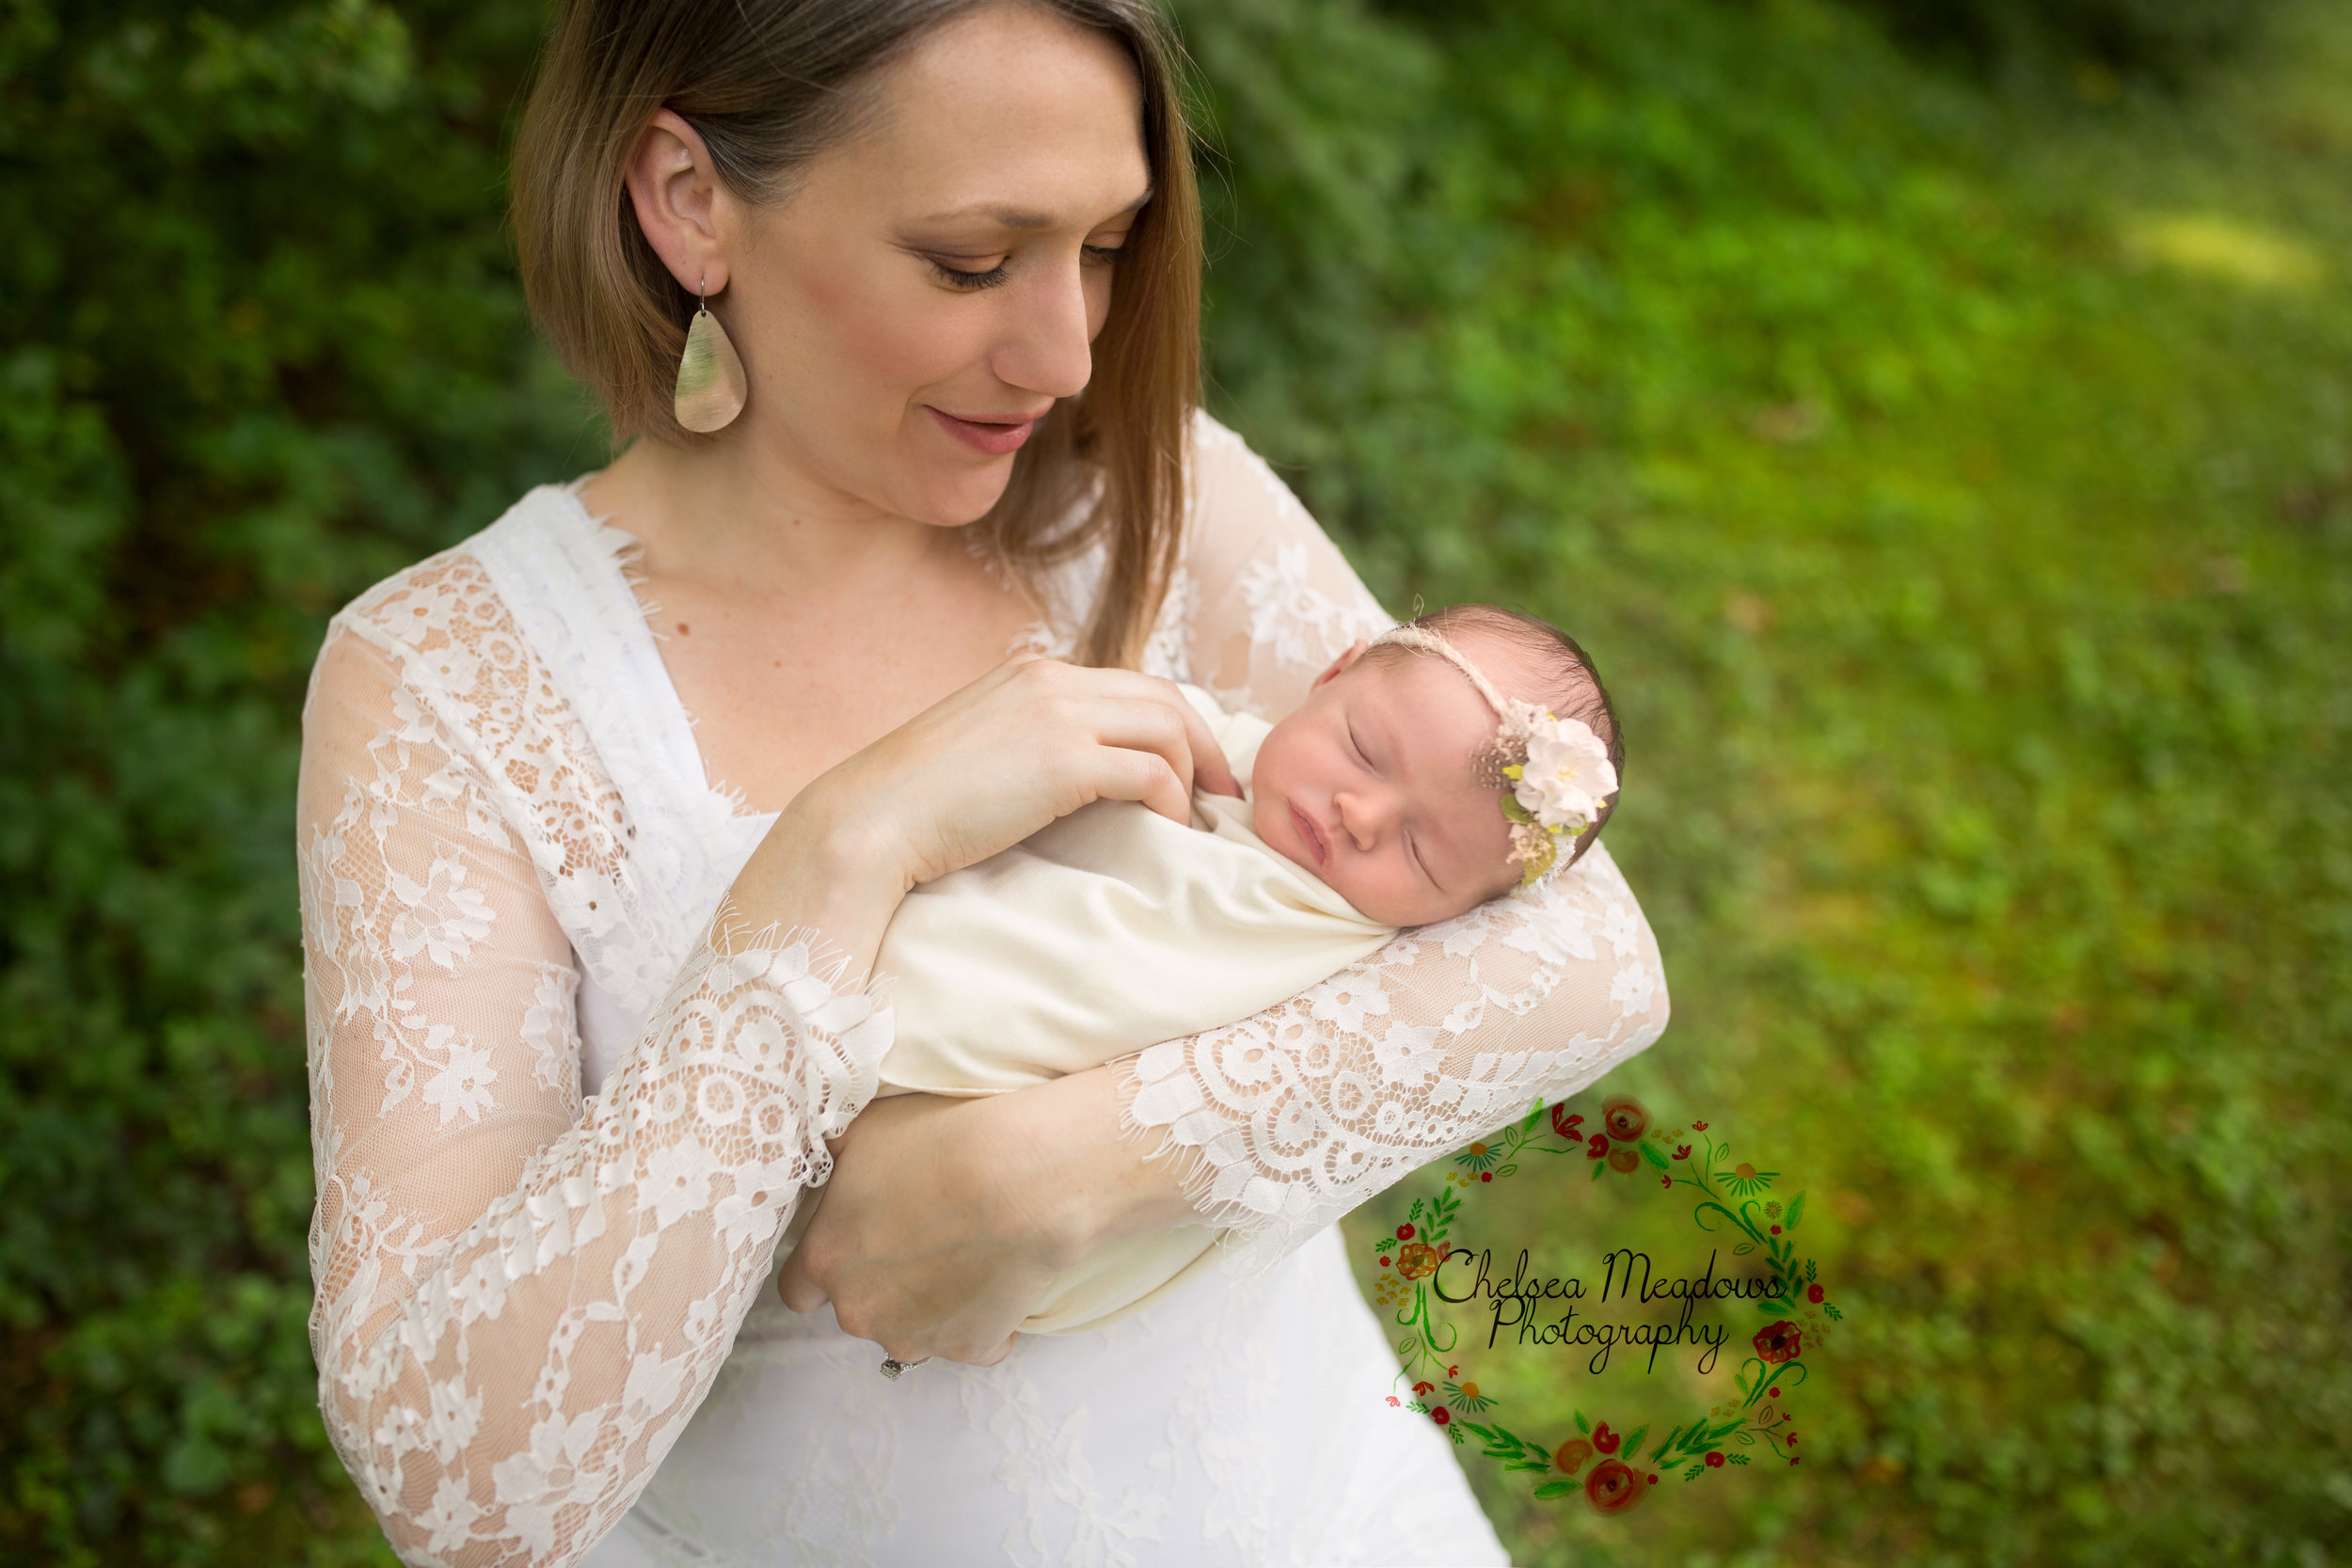 Ellis Maternity - SM - Nashville Newborn Session - Chelsea Meadows Photography (11).jpg